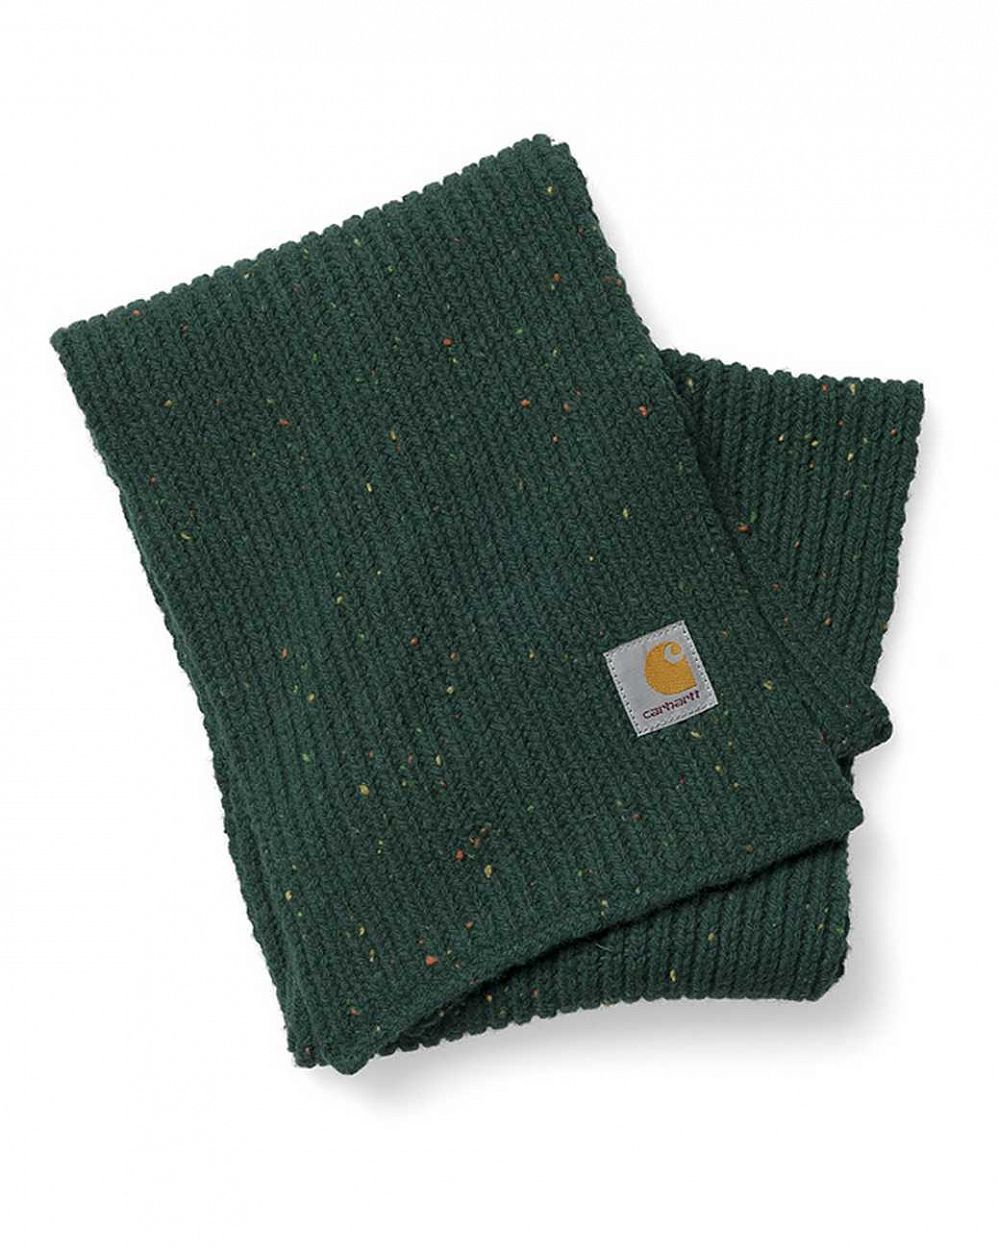 купить Шарф Carhartt WIP Anglistic Plain Scarf Bottle Green в Москве